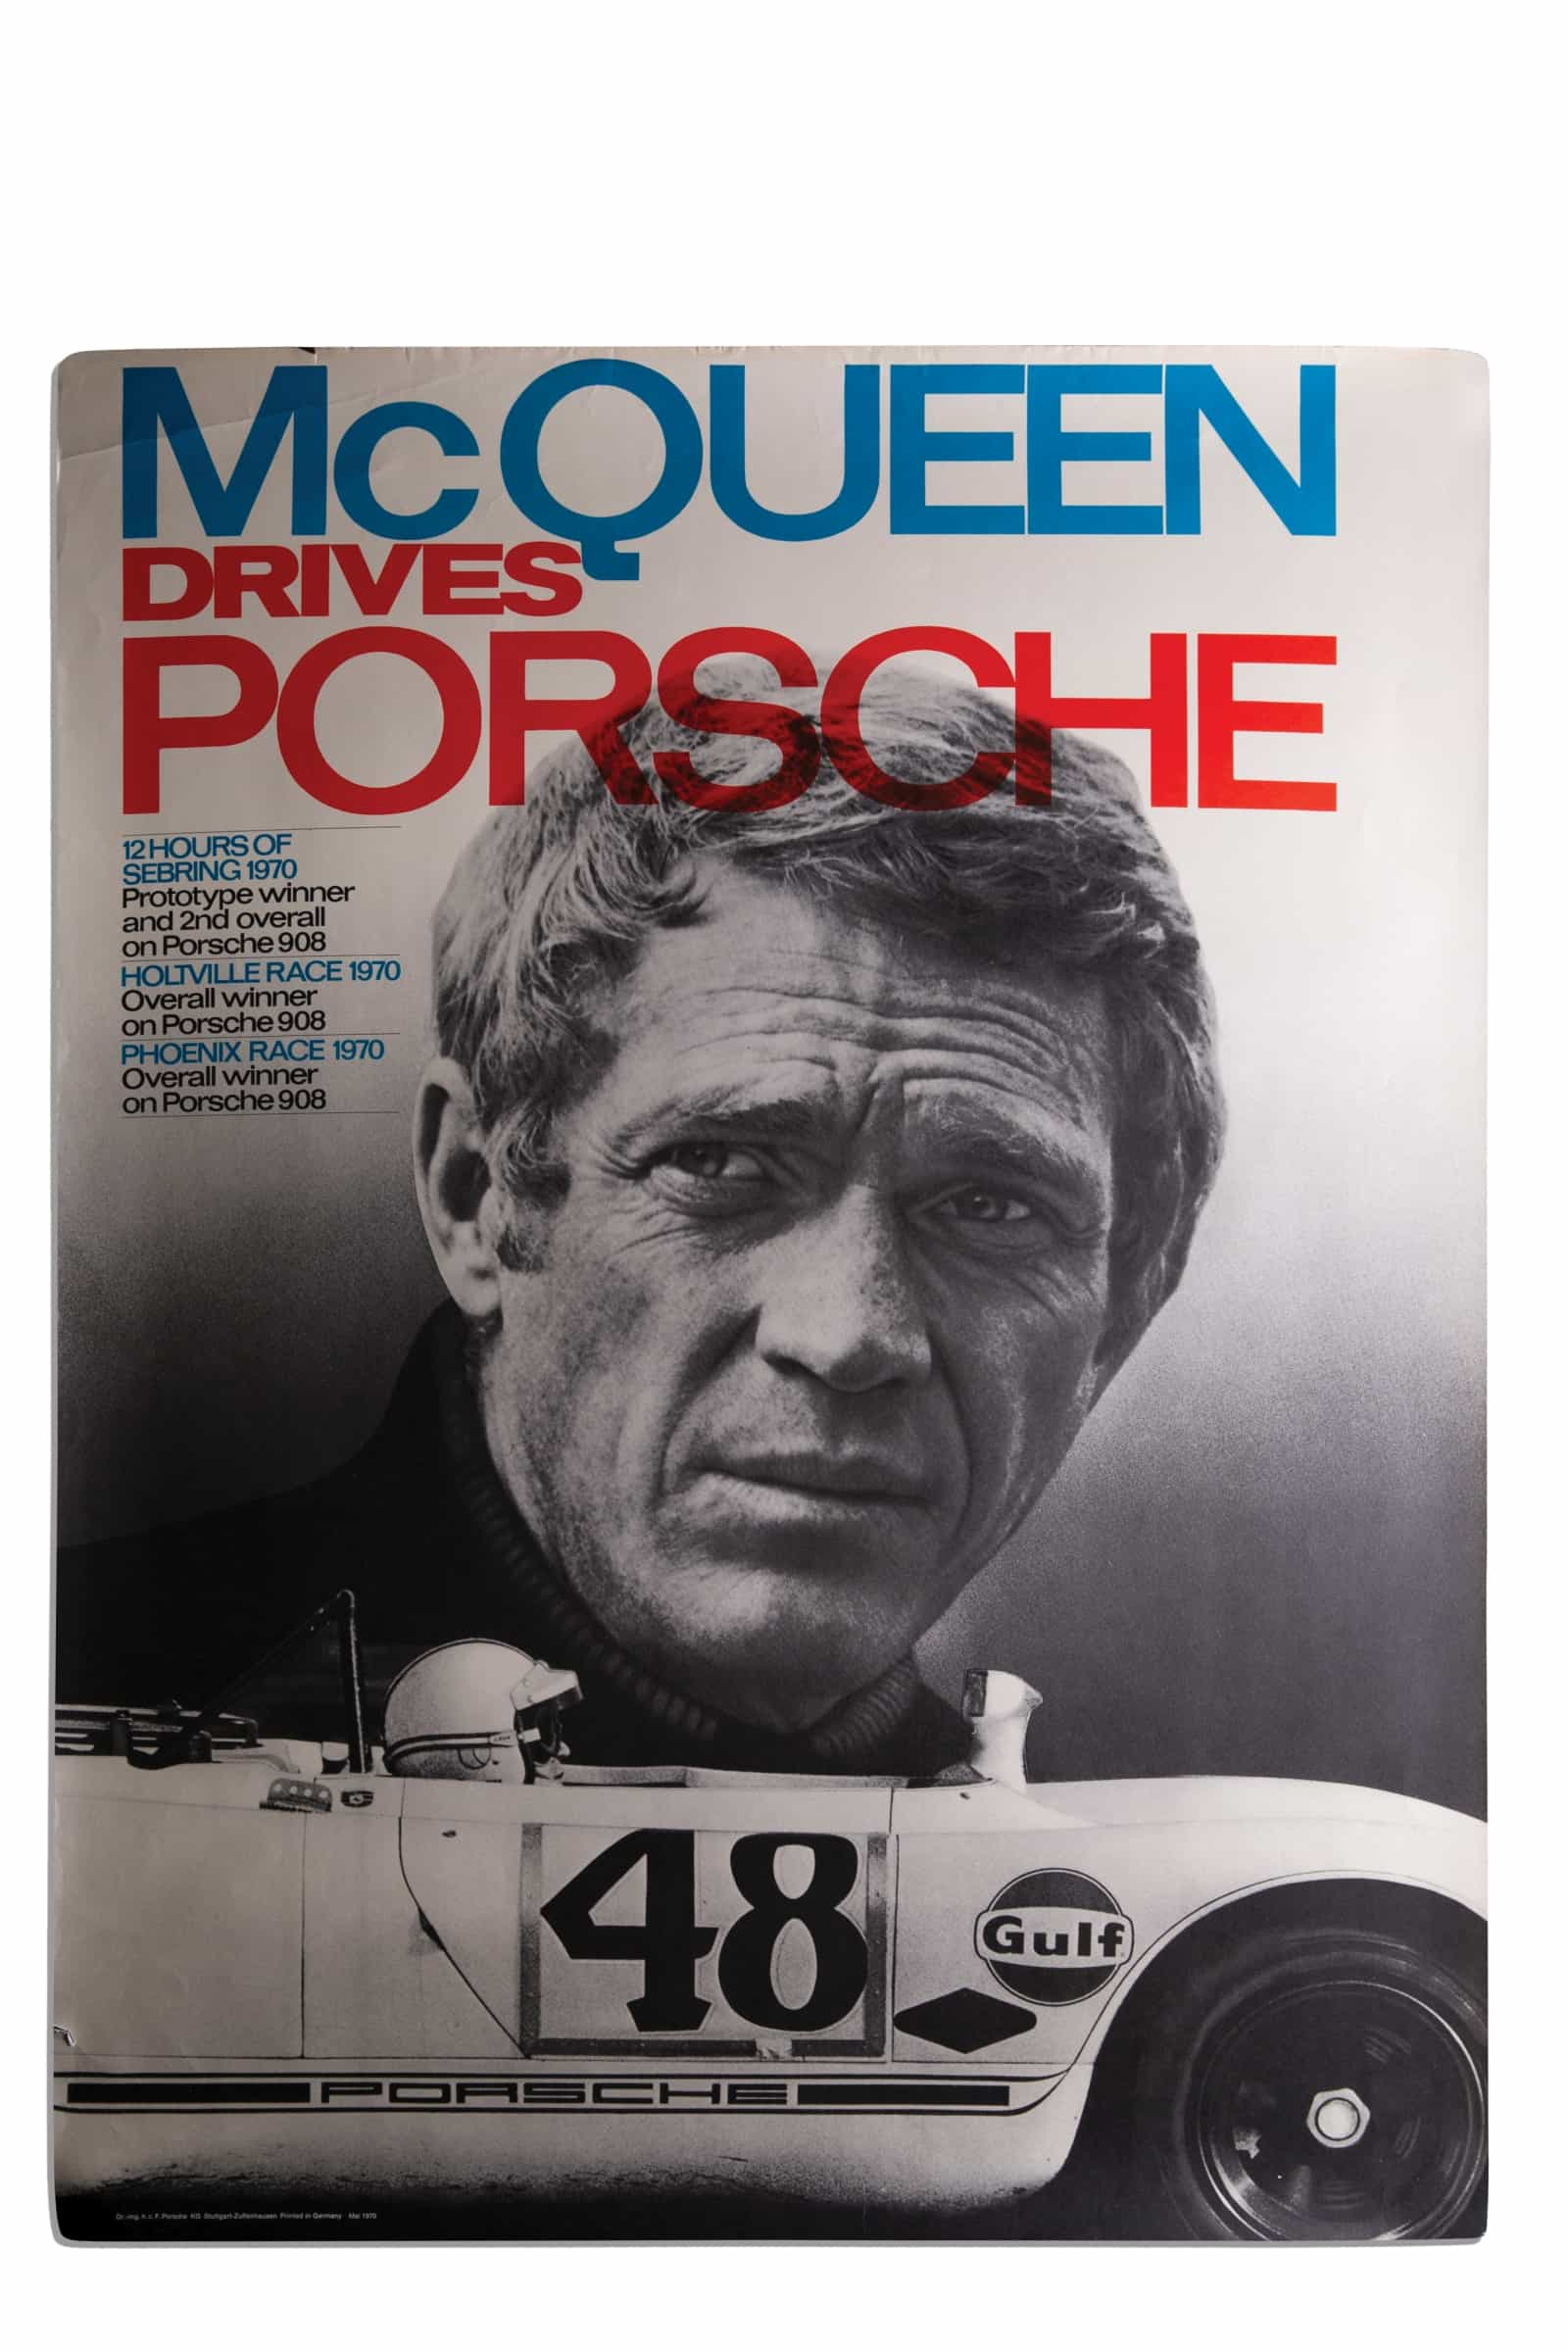 McQueen-Drives-Porsche-Poster–1970_0